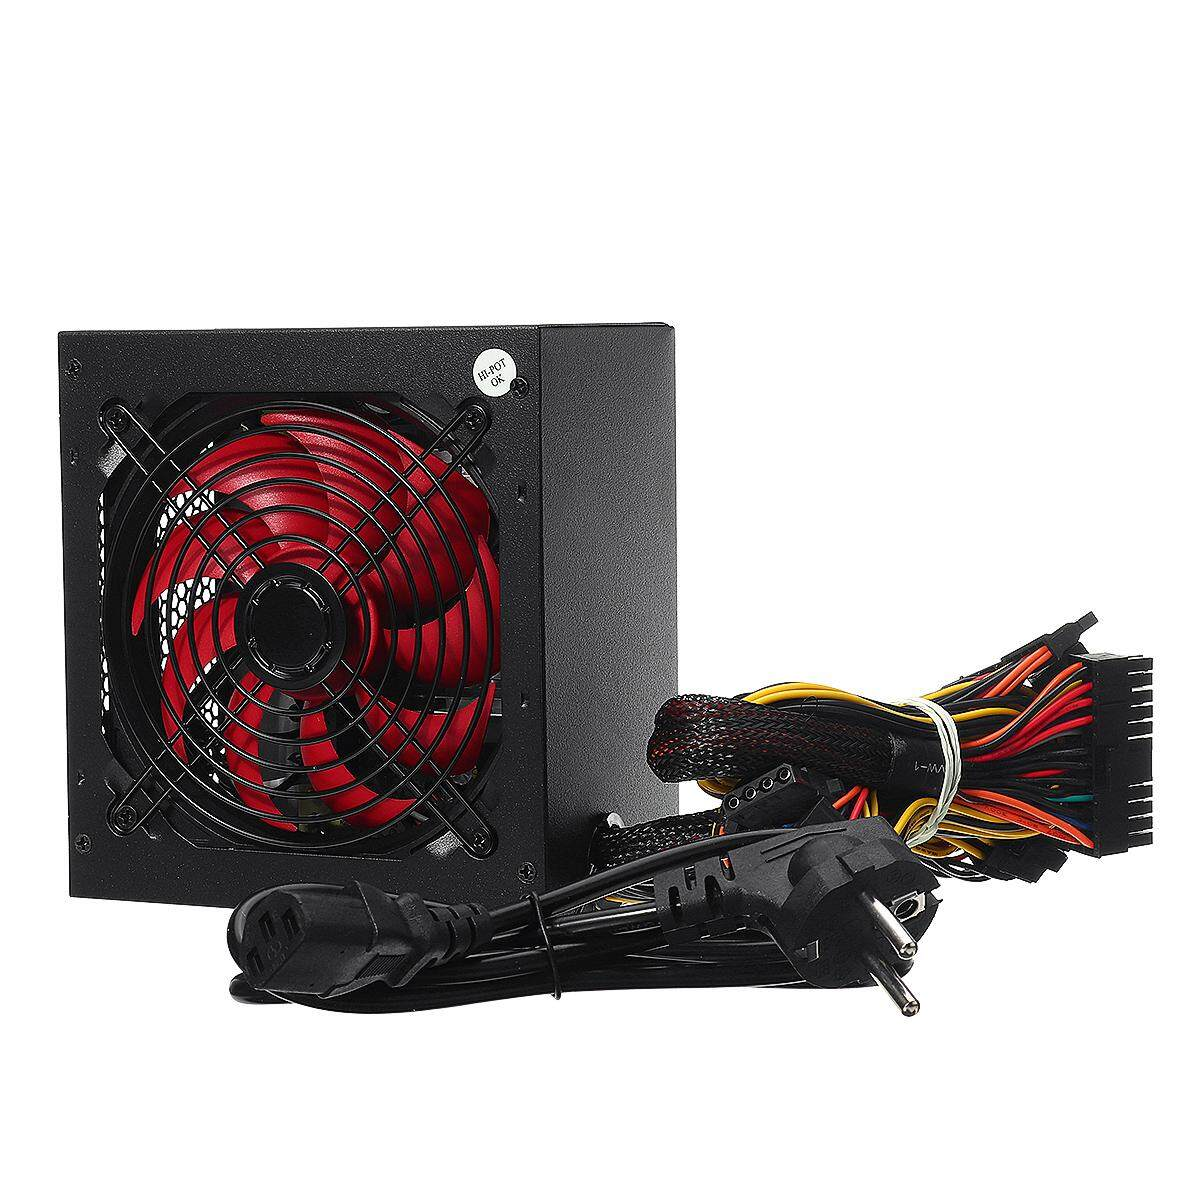 Max 650W Power Supply ATX 12V PC Computer Power Supply For Desktop Gaming Computer